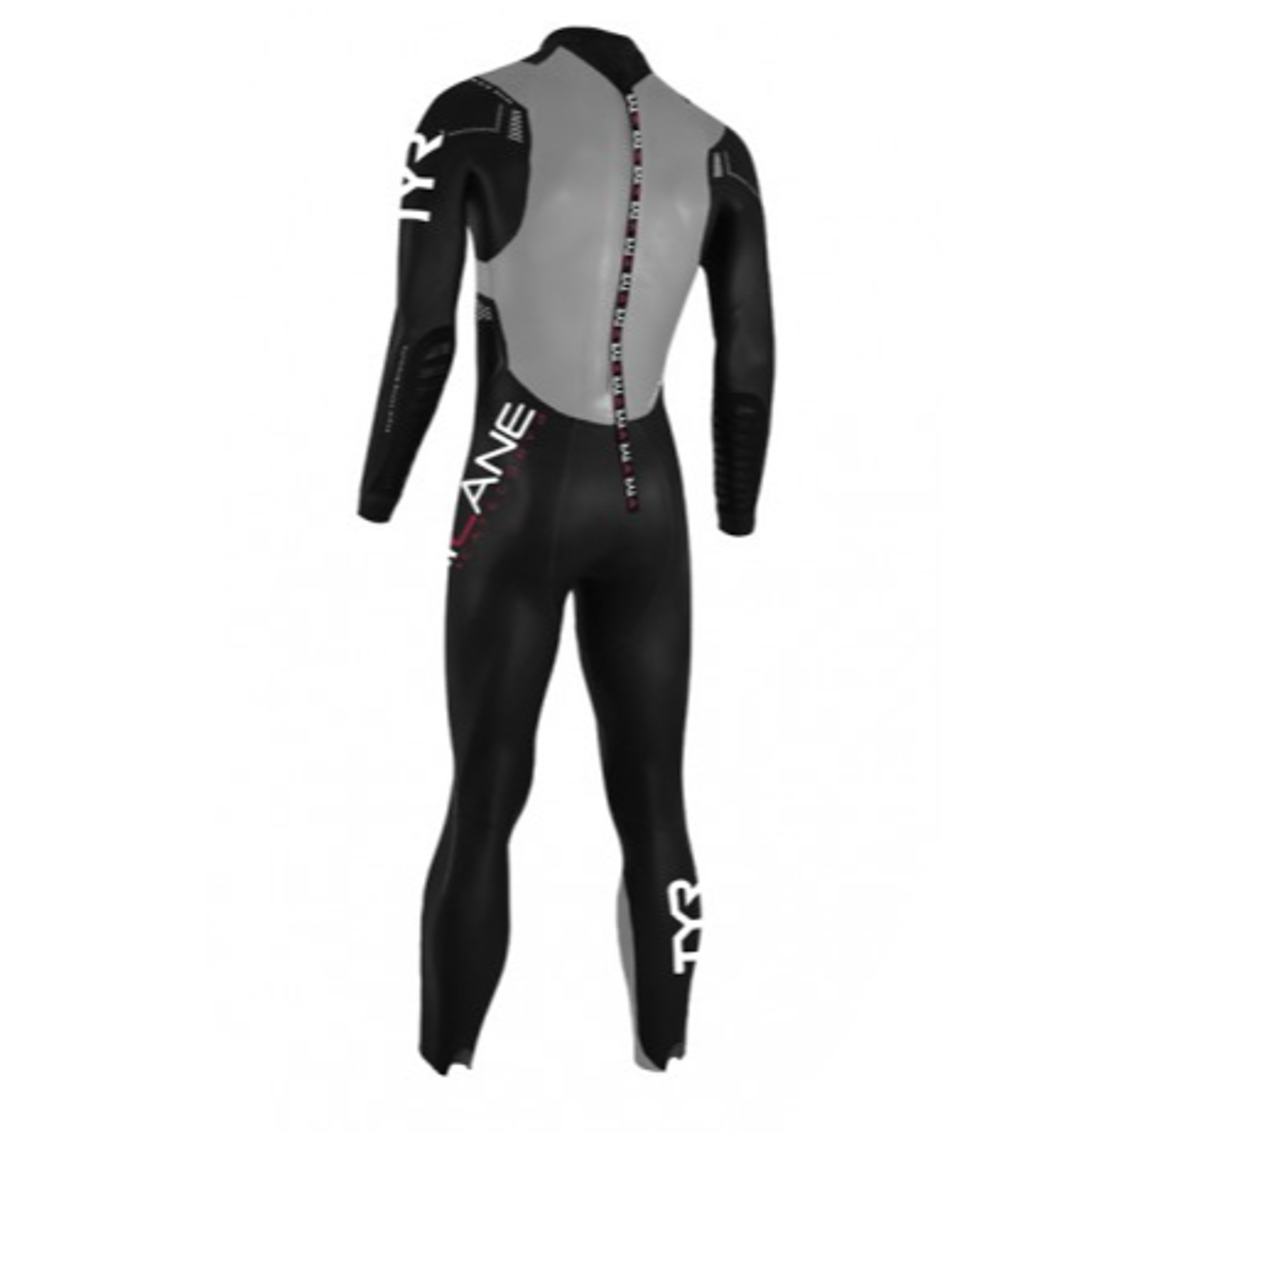 ... TYR Men s Hurricane Category 3 Wetsuit - Back c1bea4939